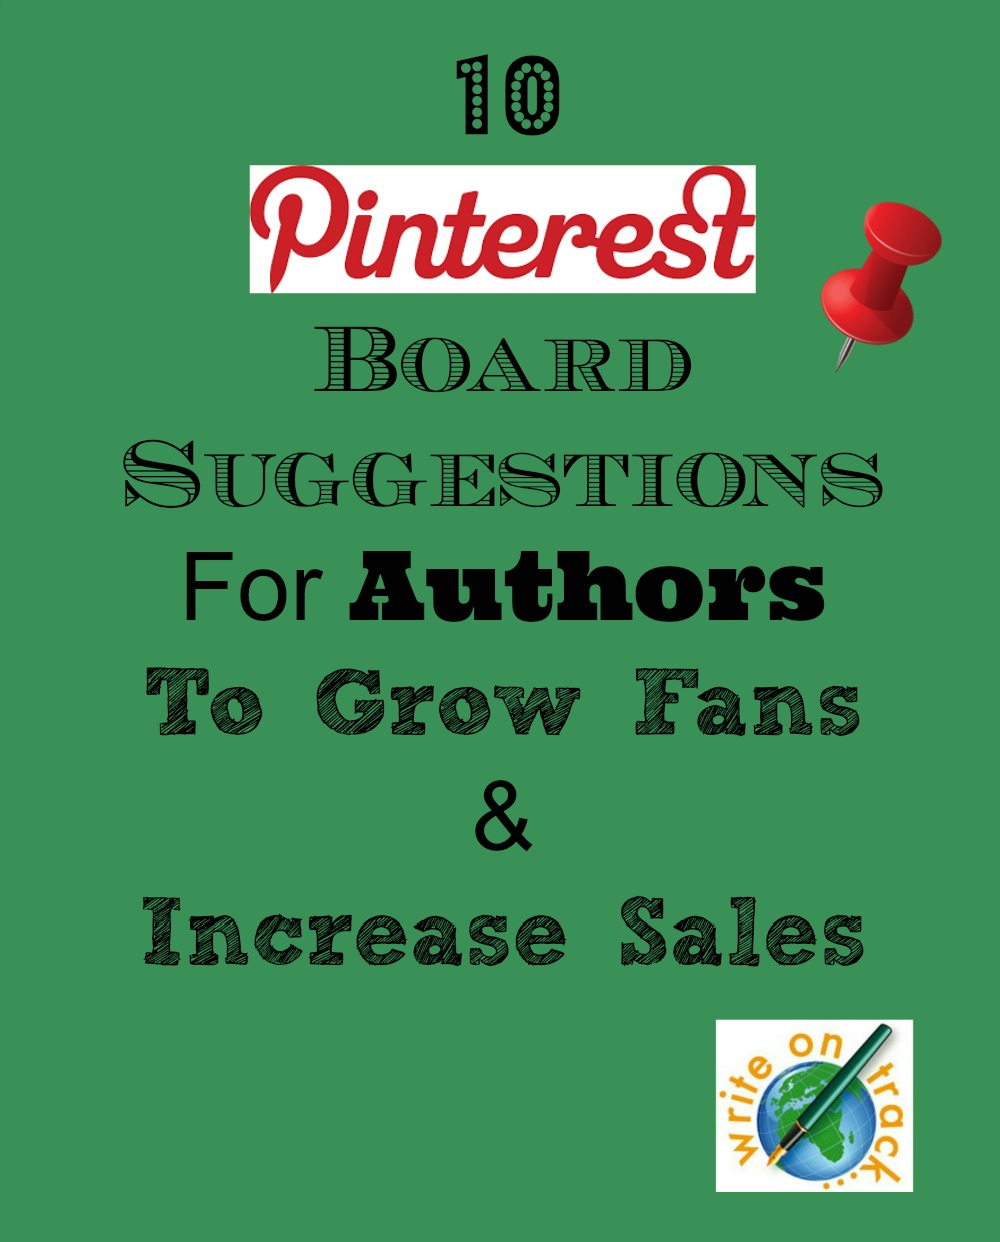 10 Pinterest Board Suggestions for Authors  Writers